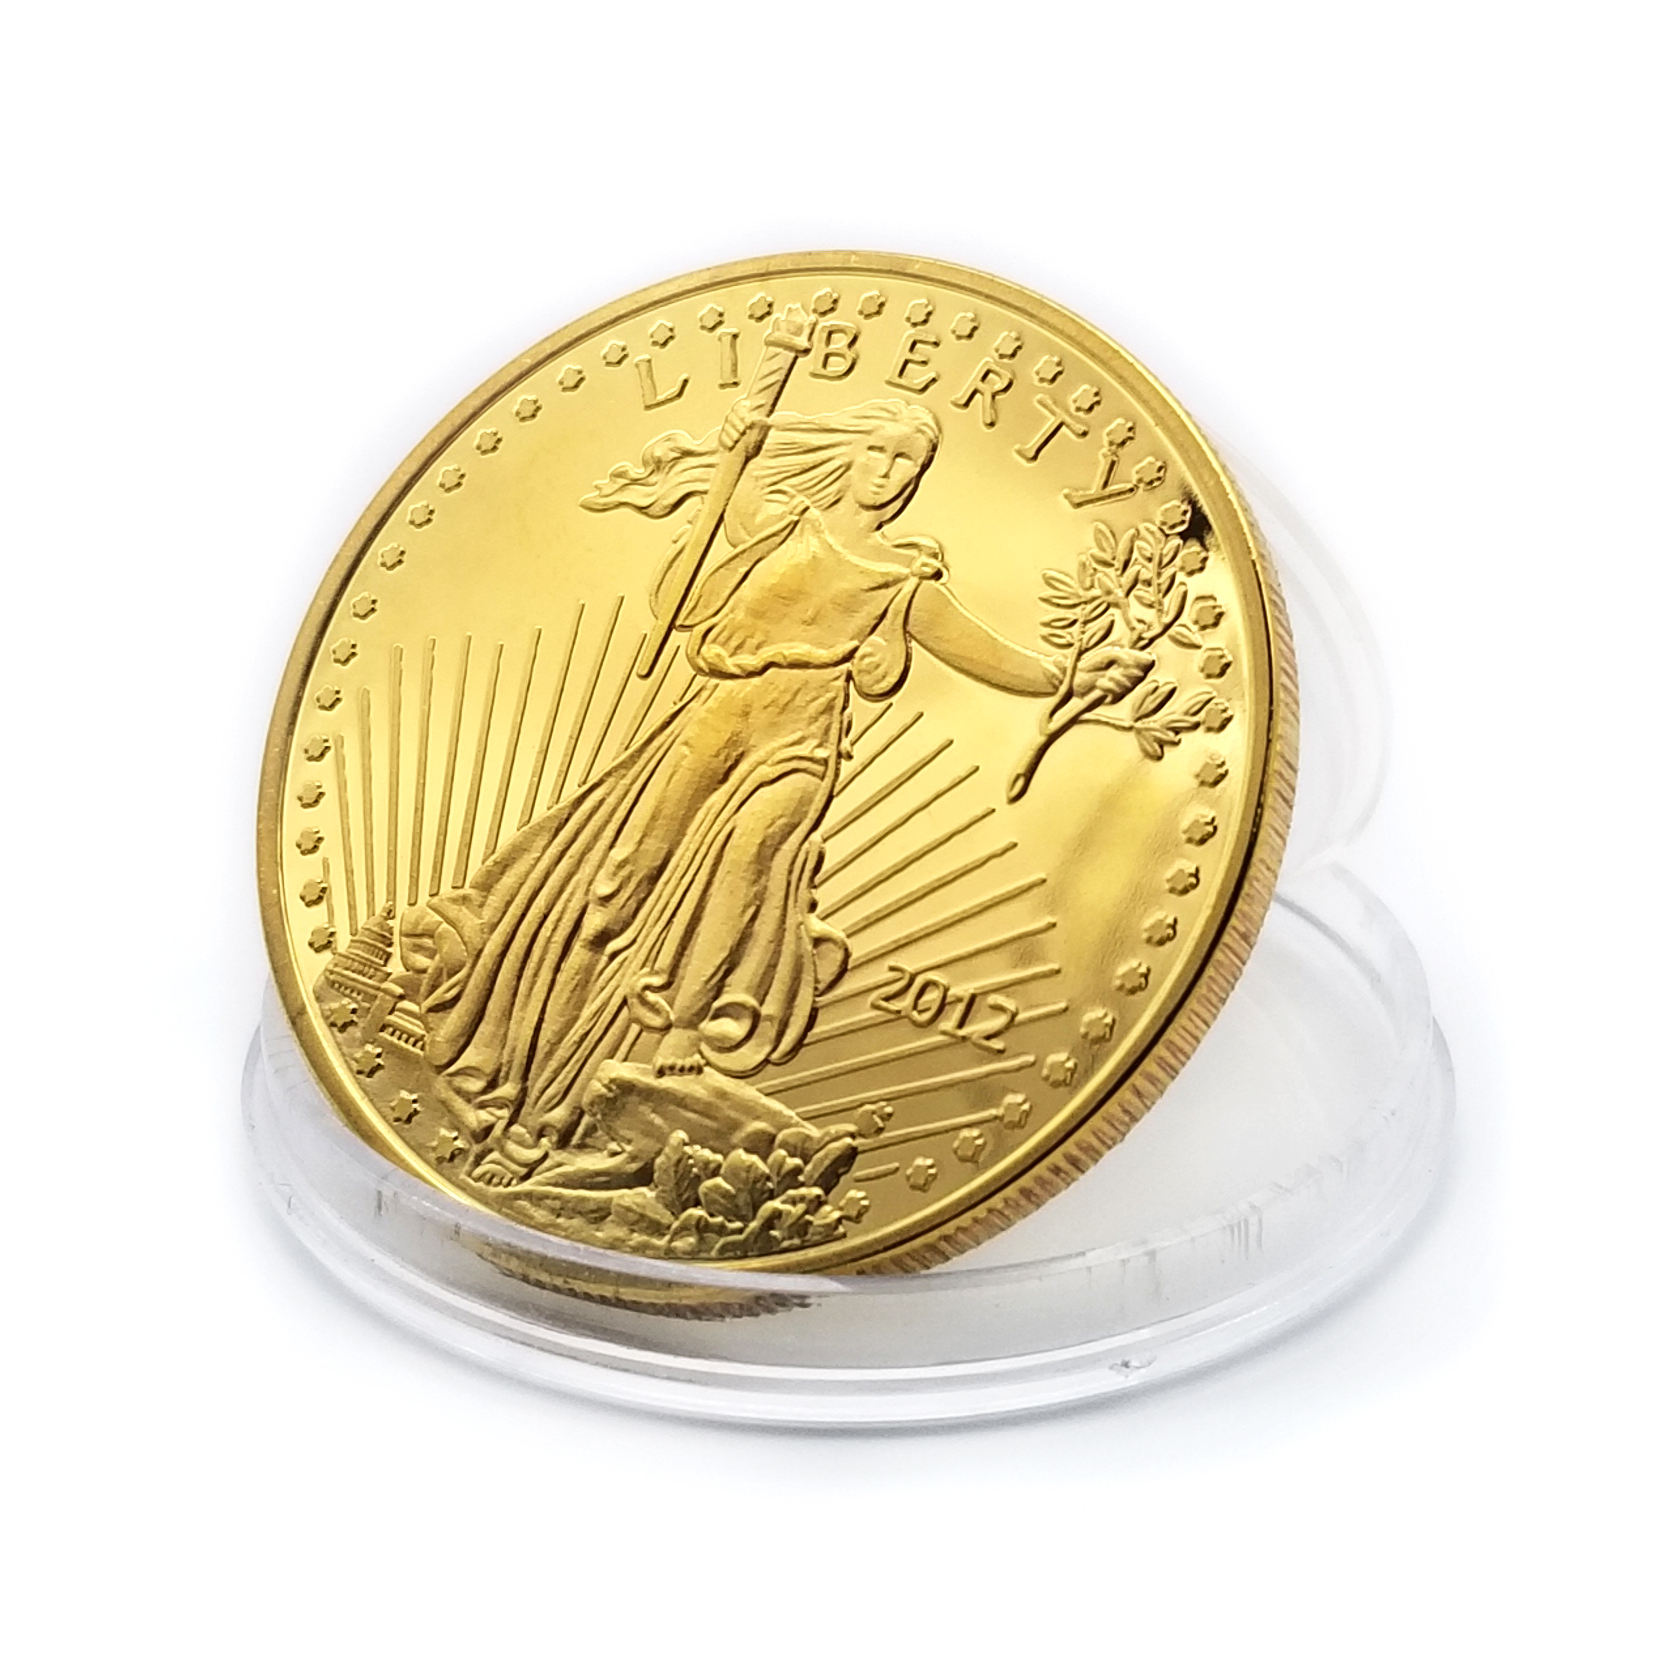 WD Cheapest 1990 / 2008 old lady liberty souvenir dollars coin usa gold silver bullion liberty price coins